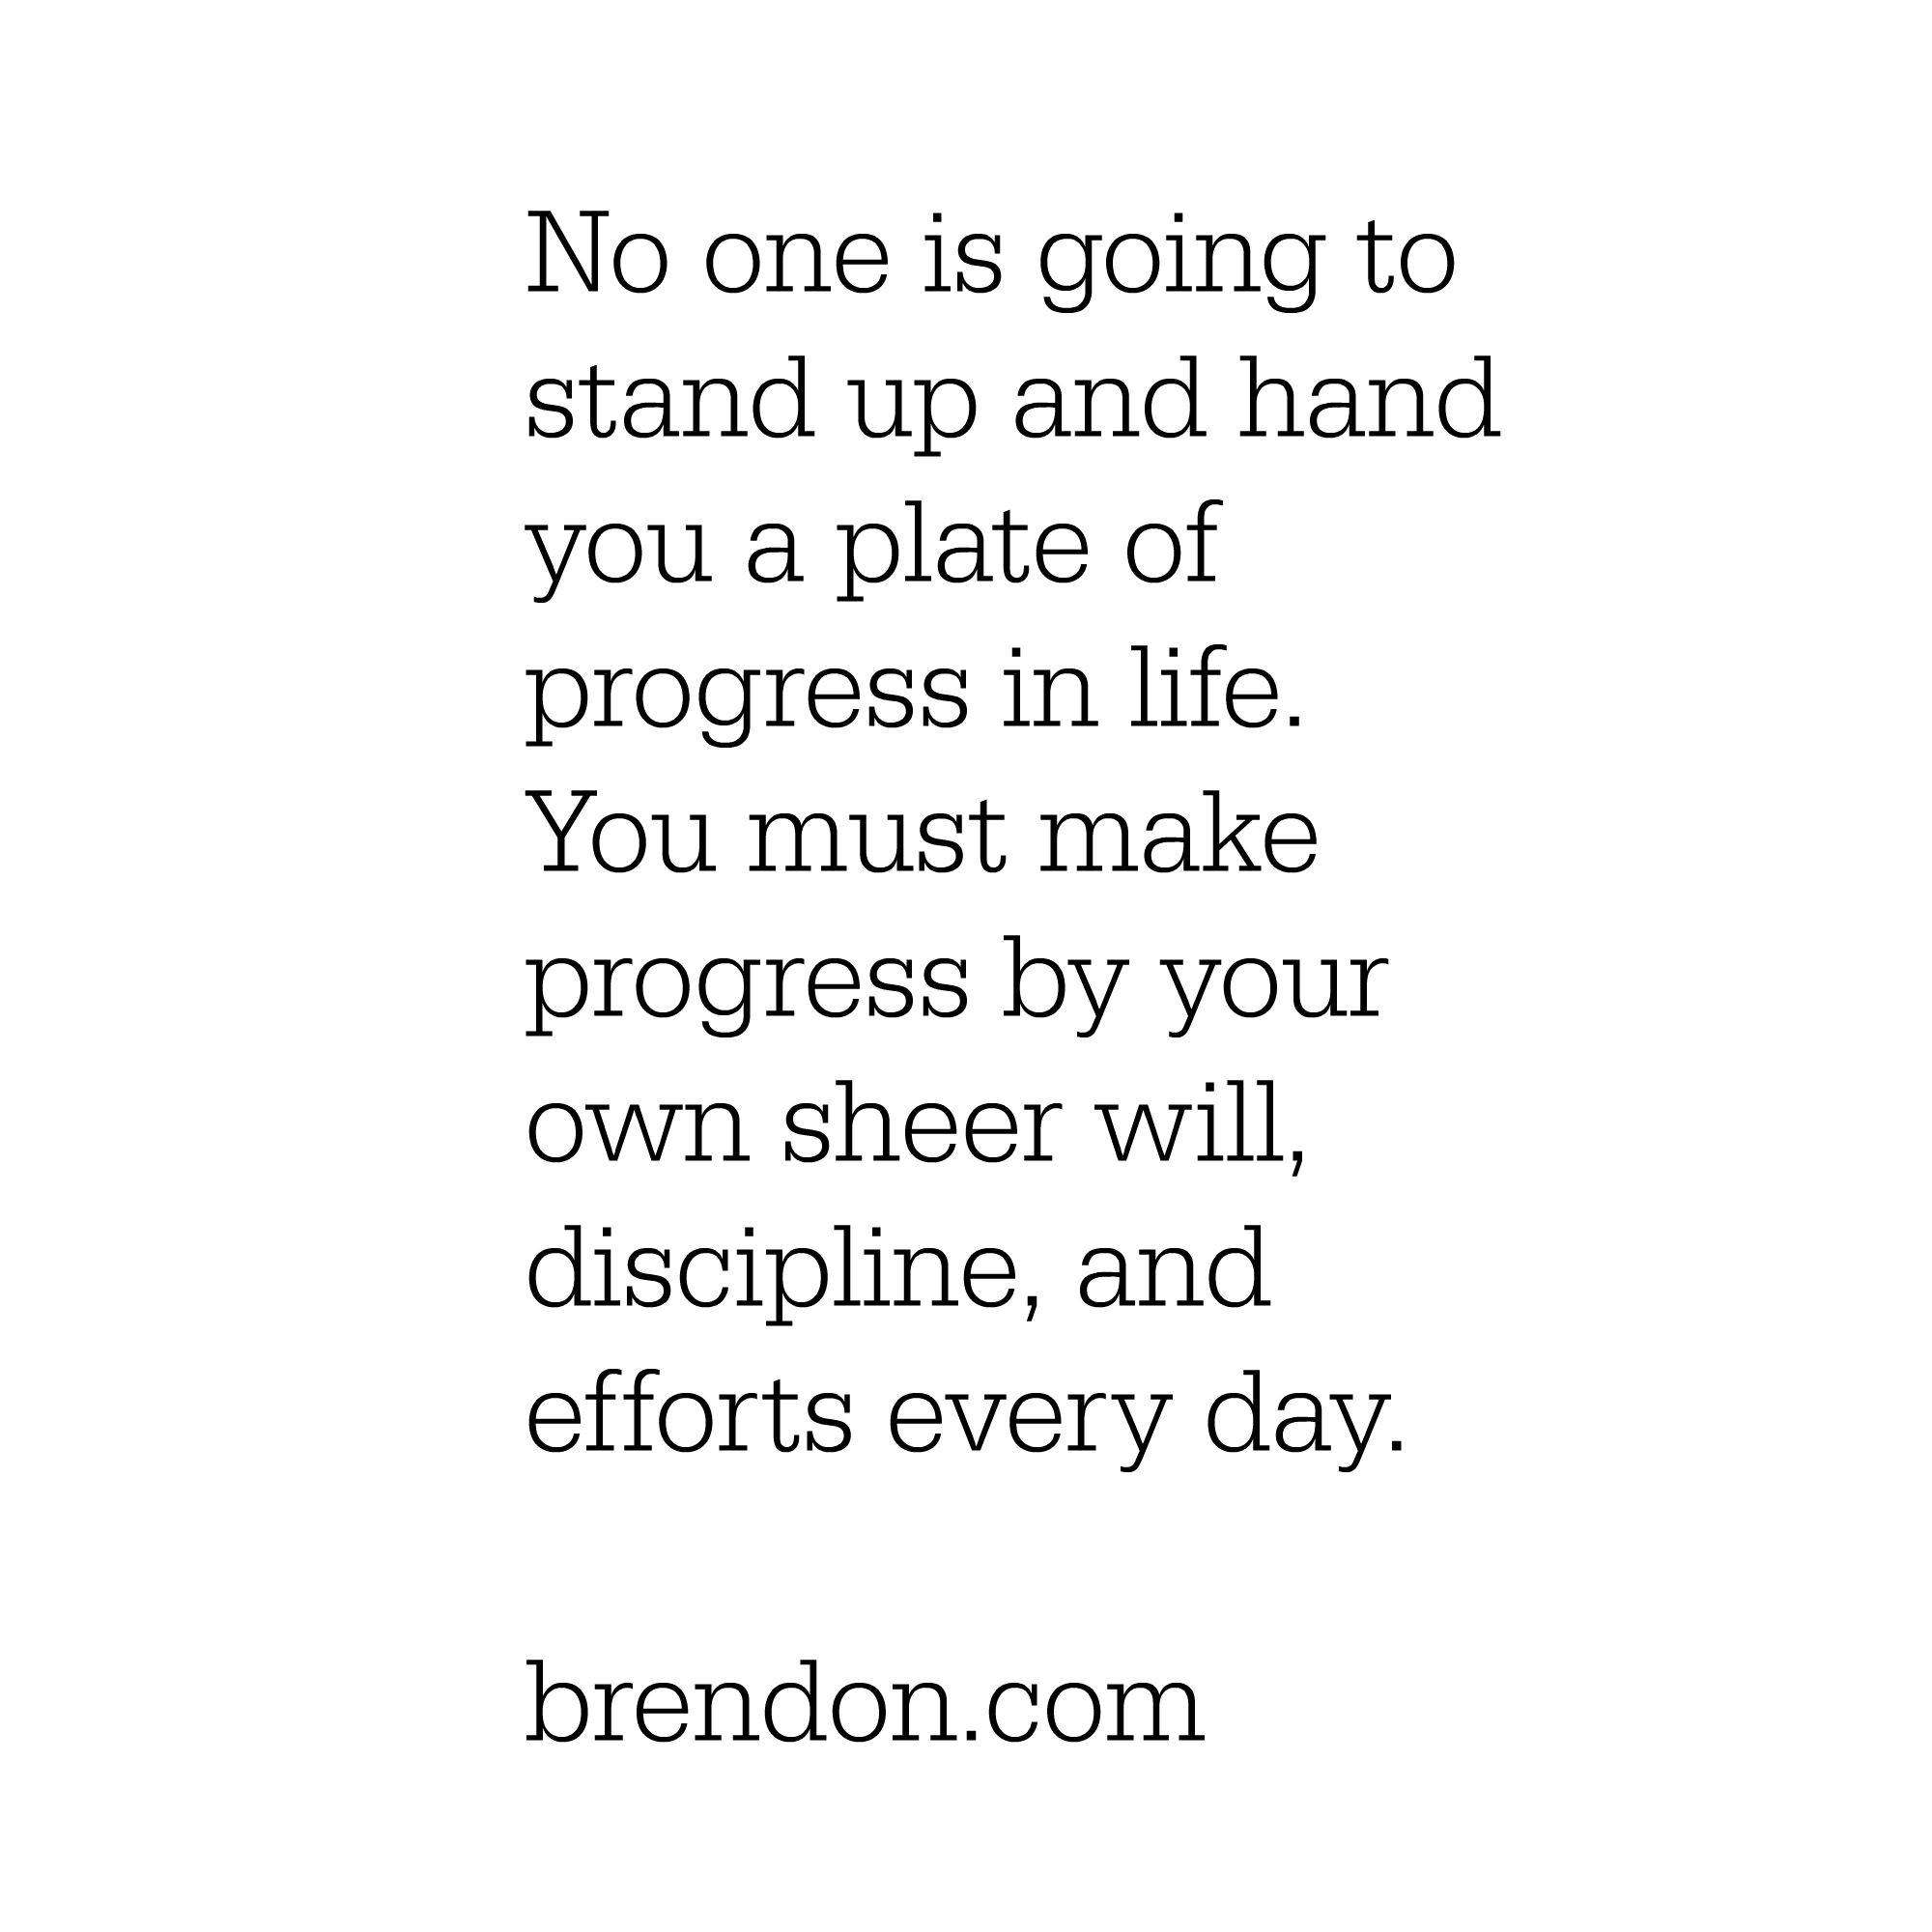 Make progress by your own sheer will, discipline, and efforts every day. Brendon Burchard.